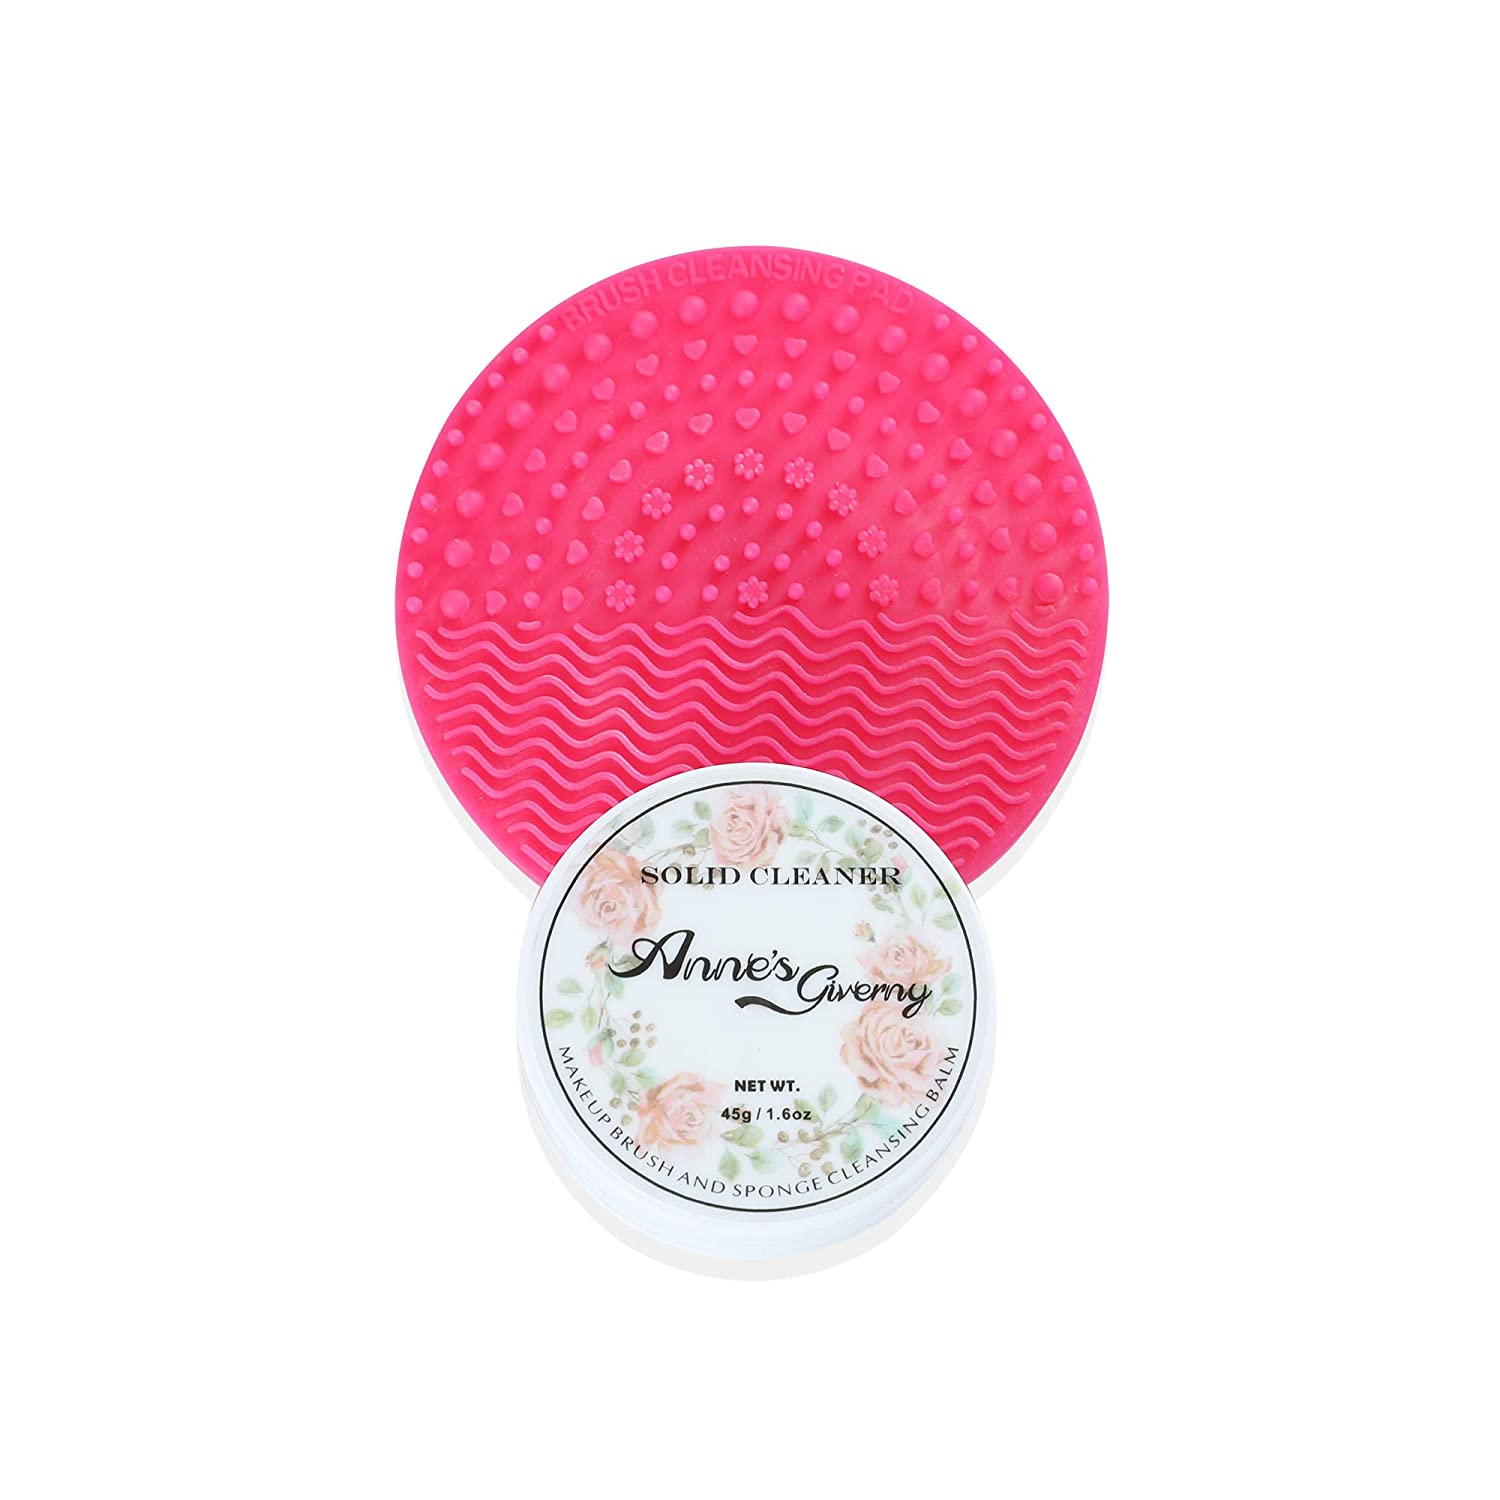 Anne's Giverny Makeup Brush Solid Cleaner Sponge Blender Cleanser (Cleaner+Pad)